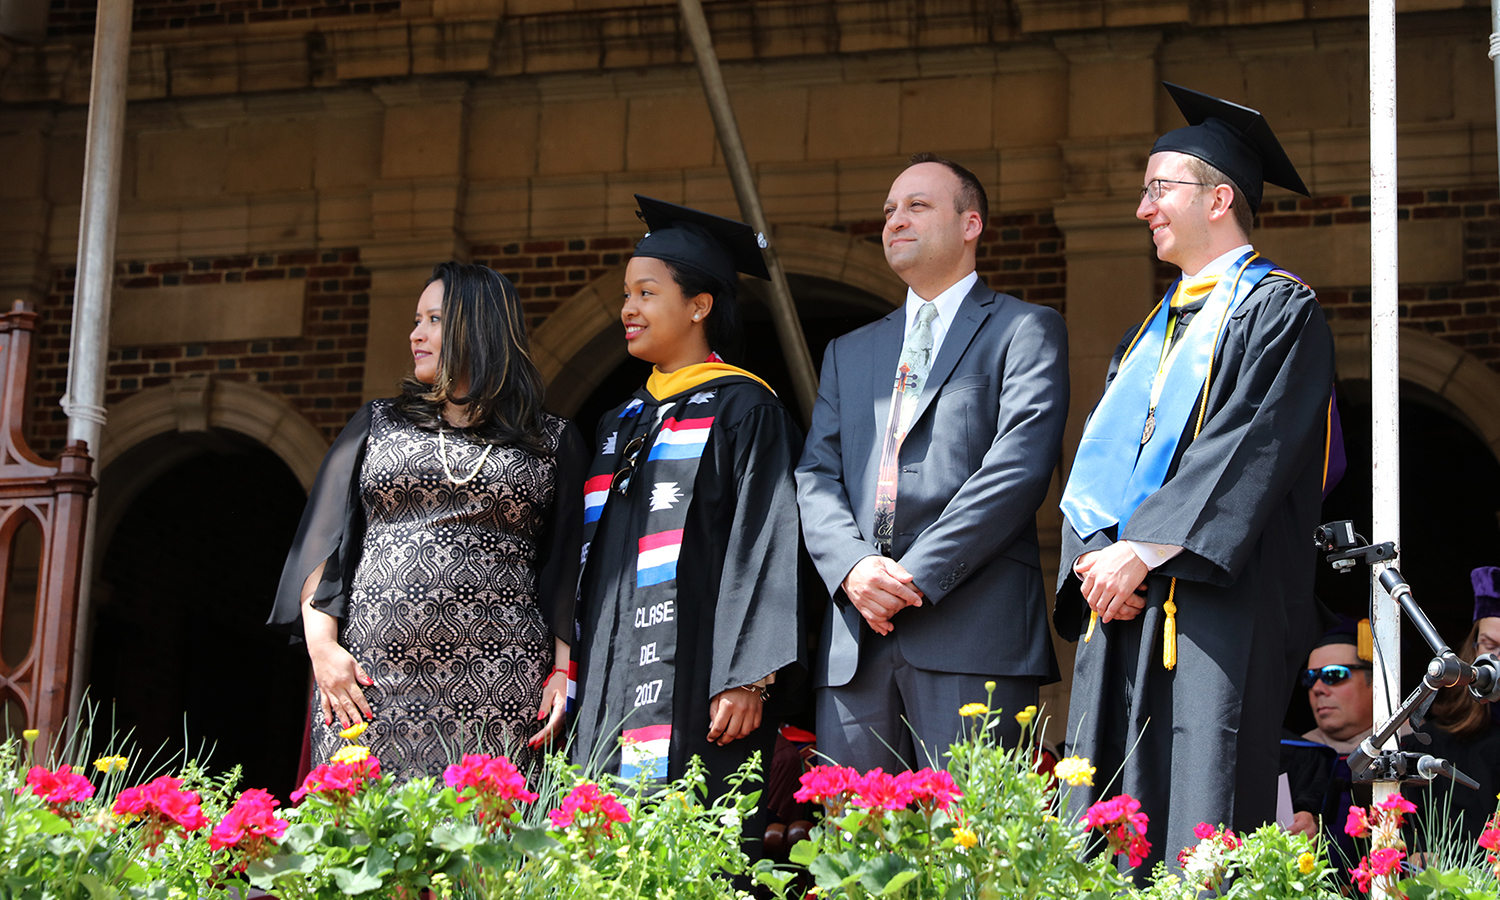 Anggela Sanchez, a bilingual studies teacher at the School of Leadership Development in Bronx, N.Y, and Carlos Mendez, a music teacher and coordinator of music for Fayetteville-Manlius School District in Central New York, receive the Touching the Future Award during Commencement 2017. They were nominated by Jerlin Garo '17 and Chris Demas '17.